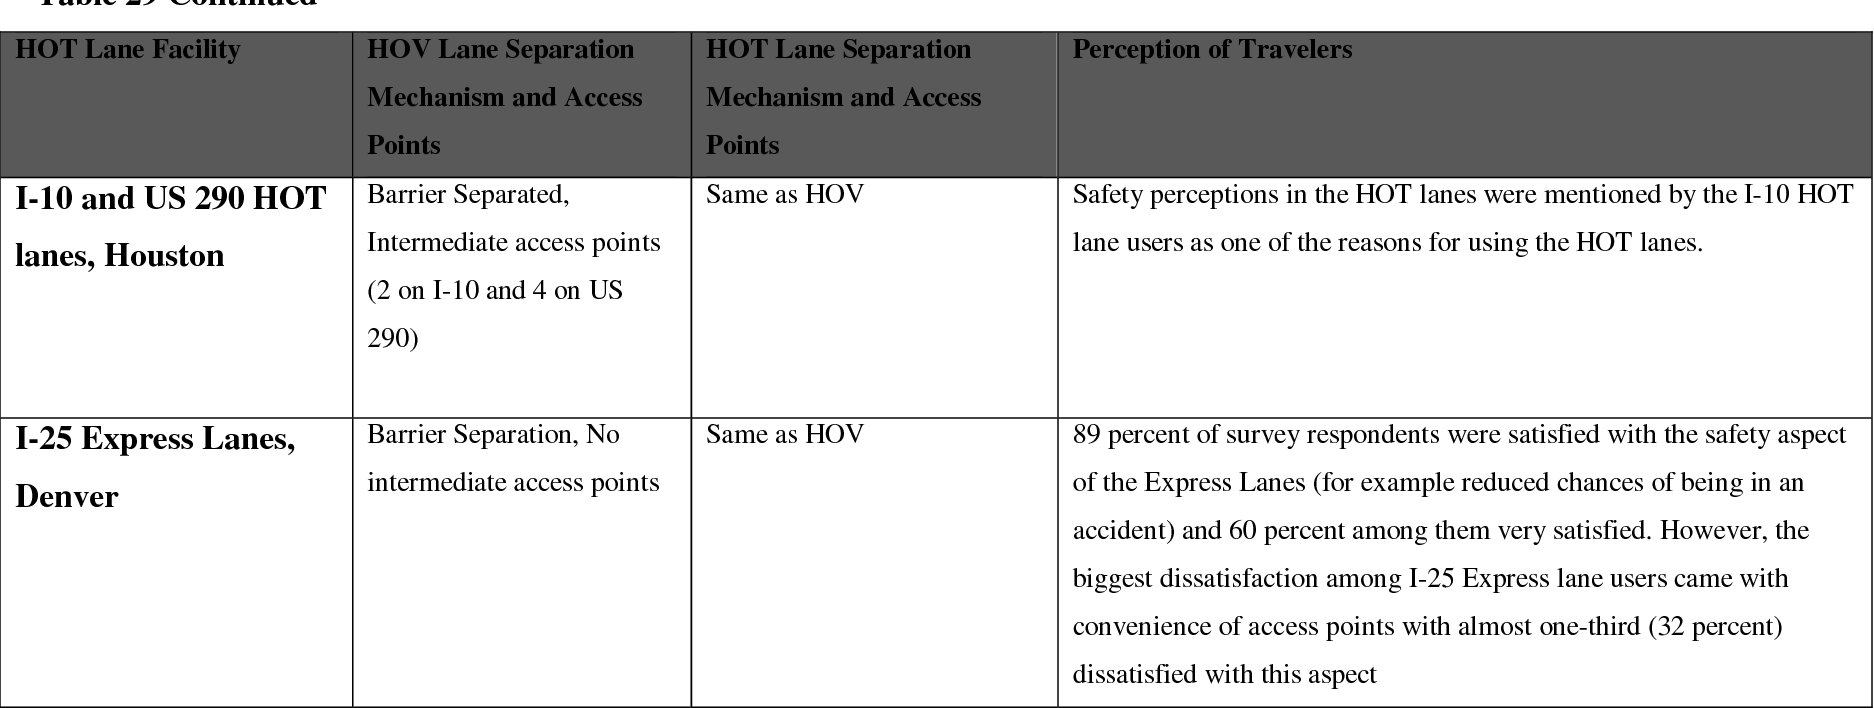 Hot lane policies and their implications - Semantic Scholar